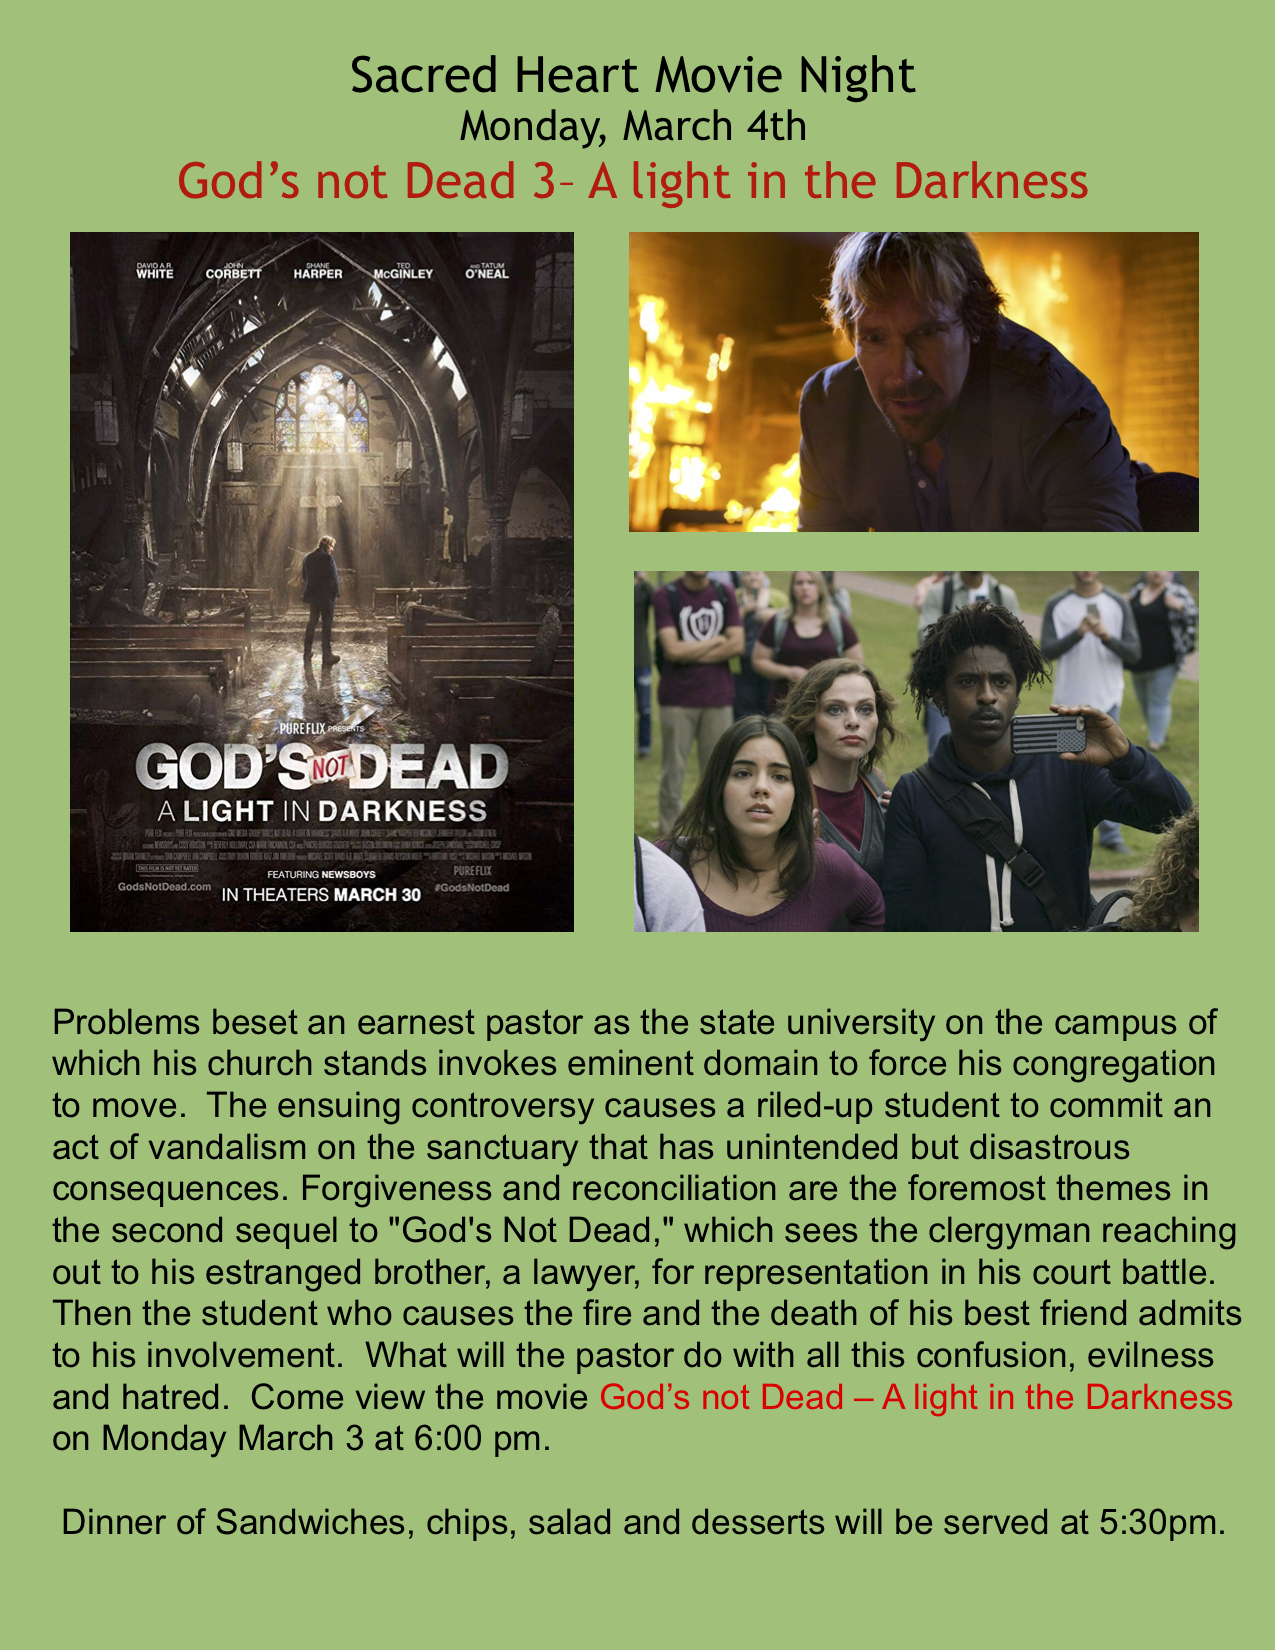 Sacred Heart Movie Night - God's Not Dead 3